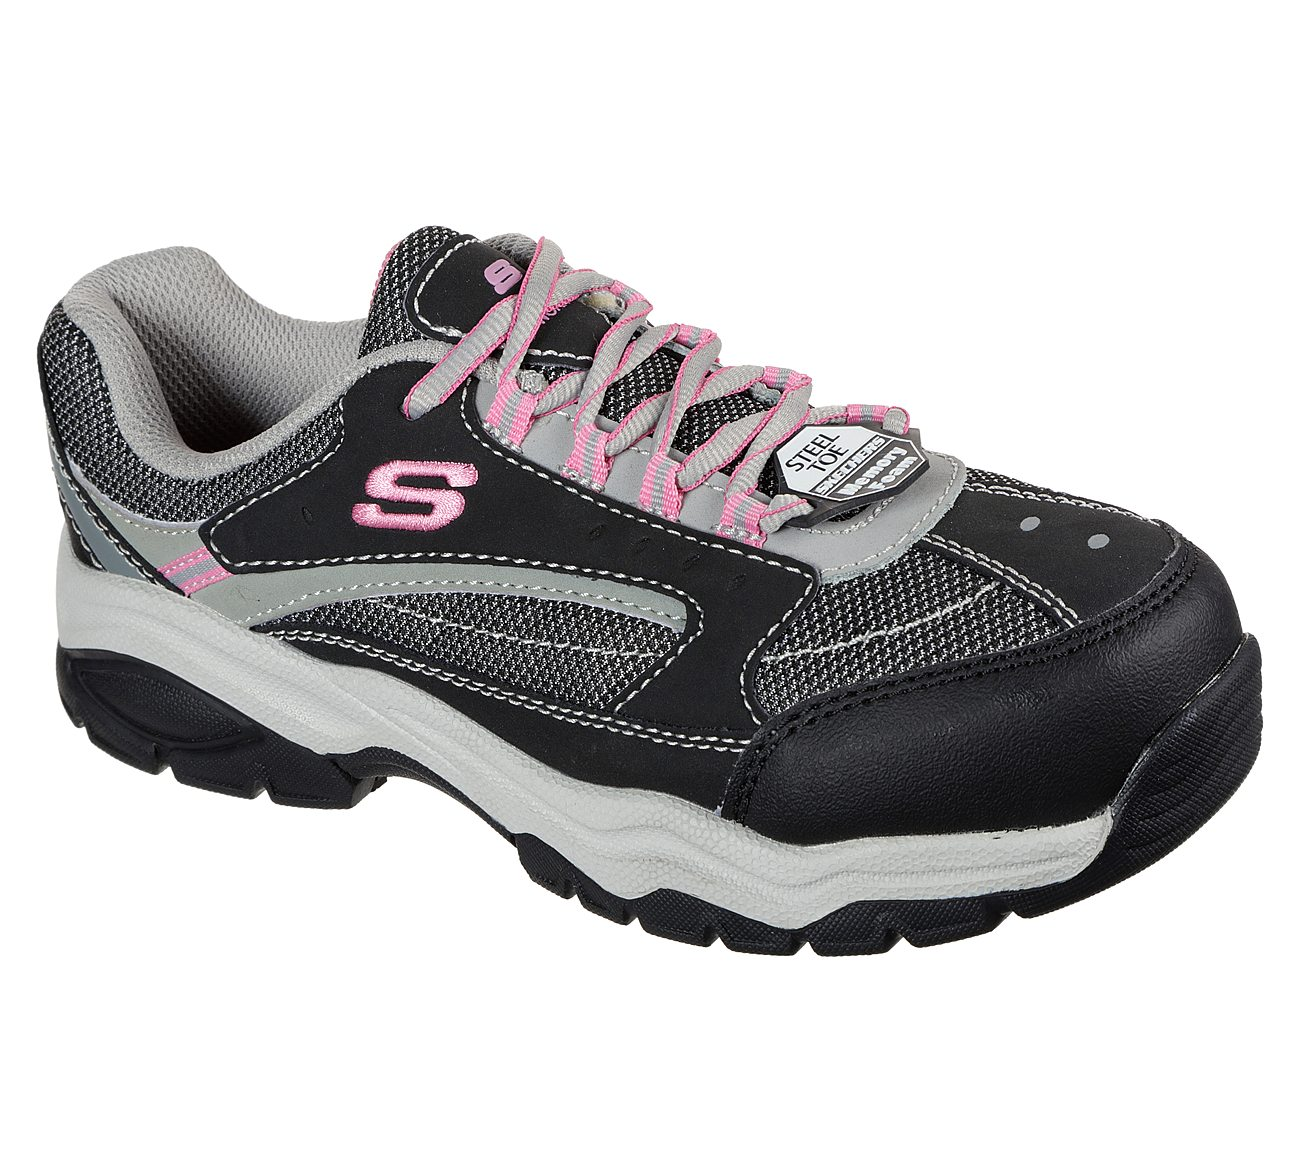 ca7d39d18c5901 Buy SKECHERS Work: Biscoe ST Work Shoes only $70.00